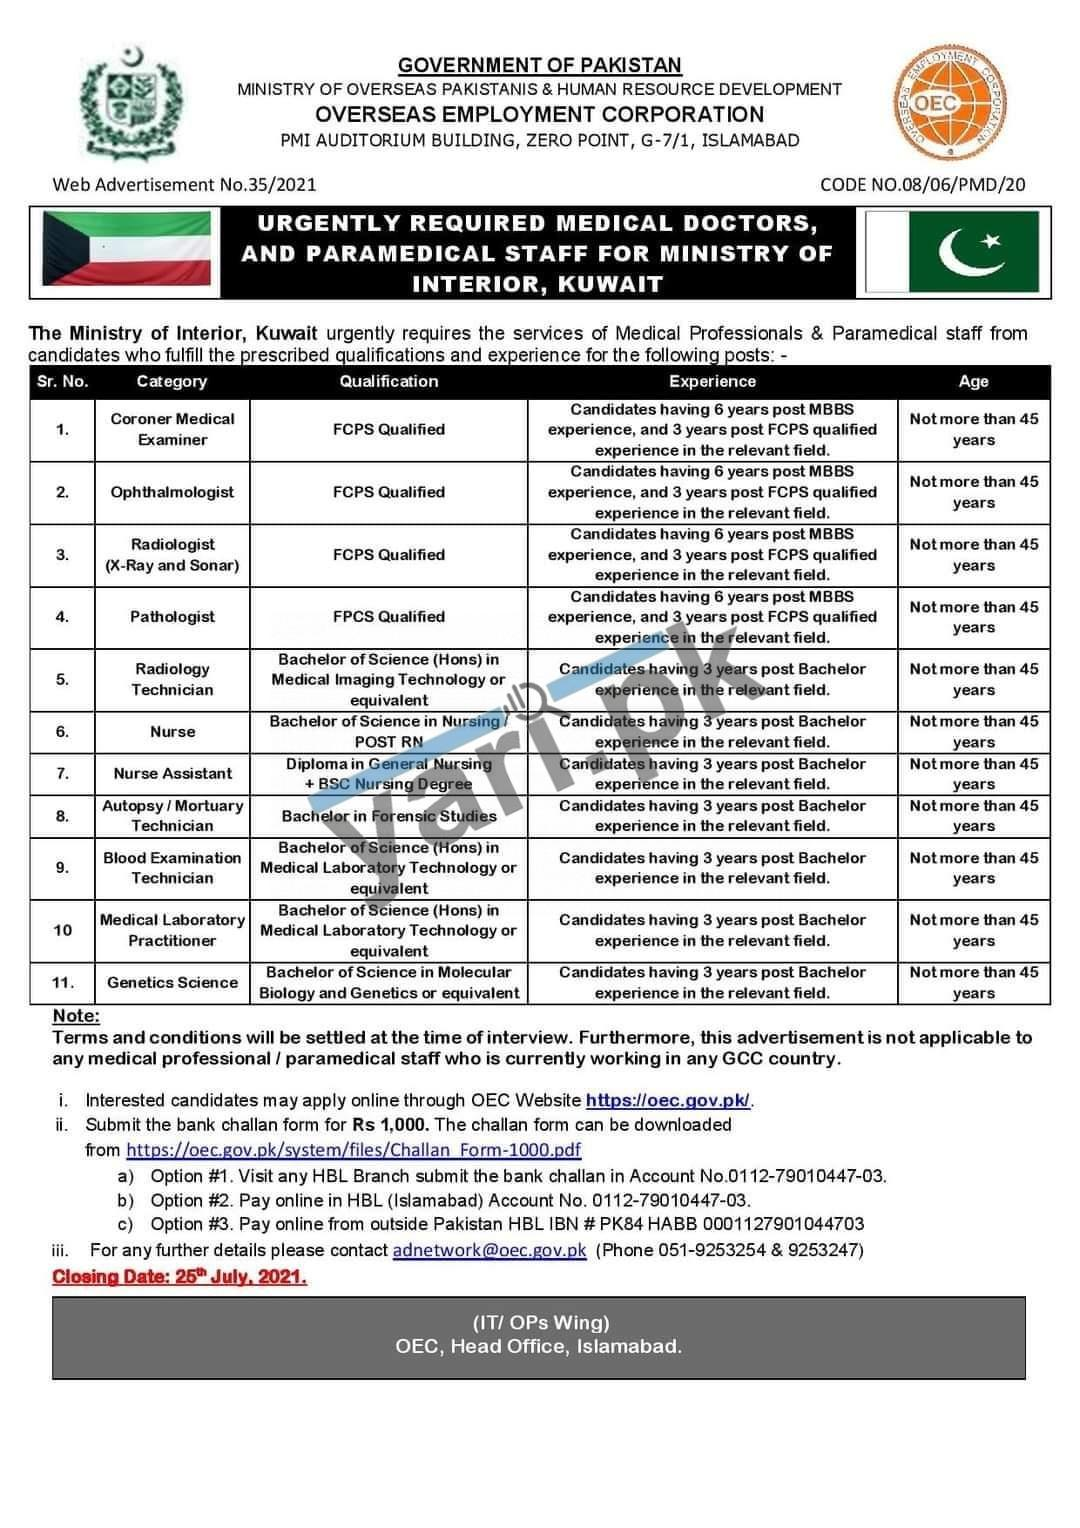 ministry-of-interior-jobs-in-kuwait-2021